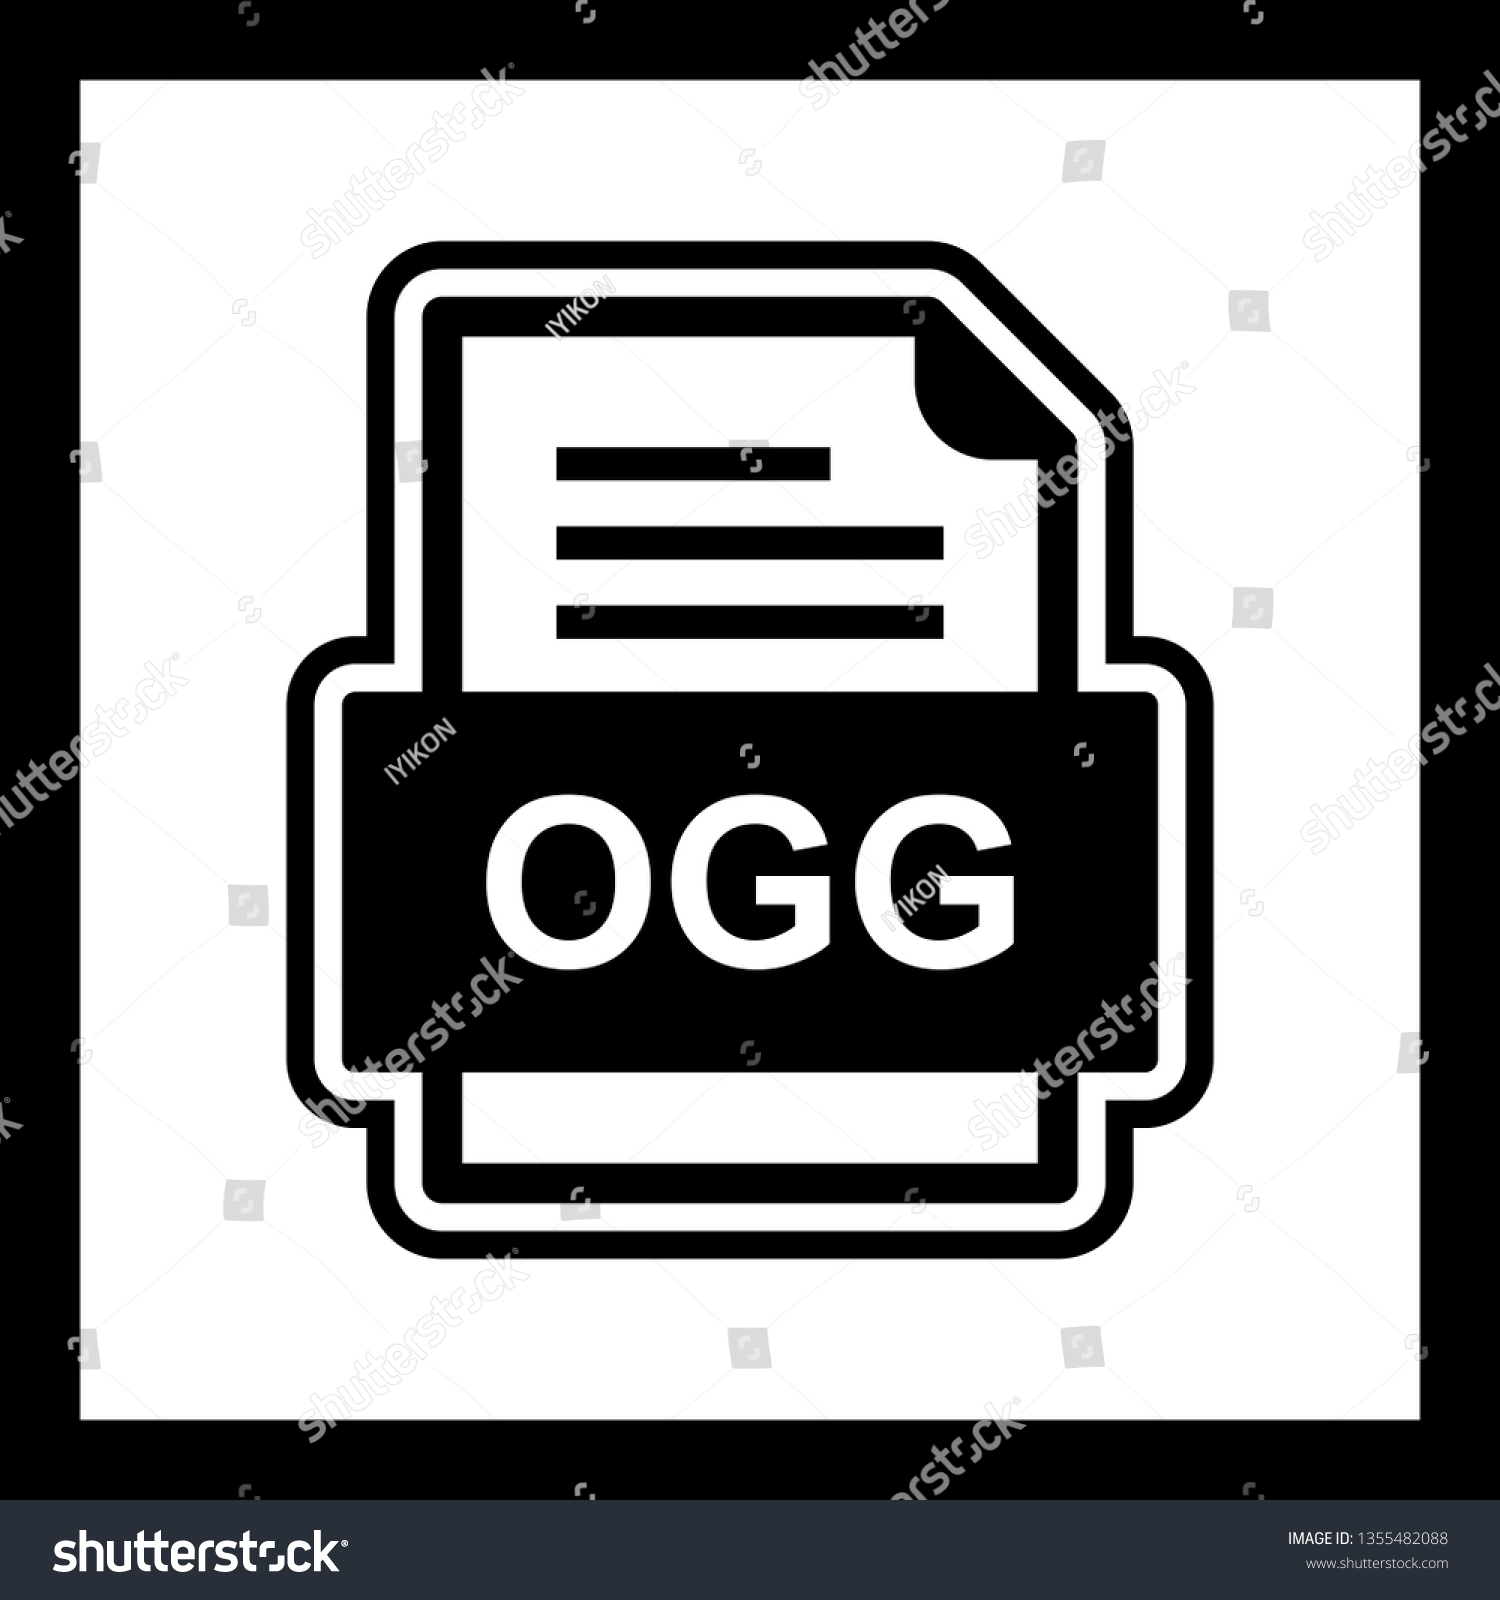 Ogg File Document Icon Stock Vector (Royalty Free) 1355482088